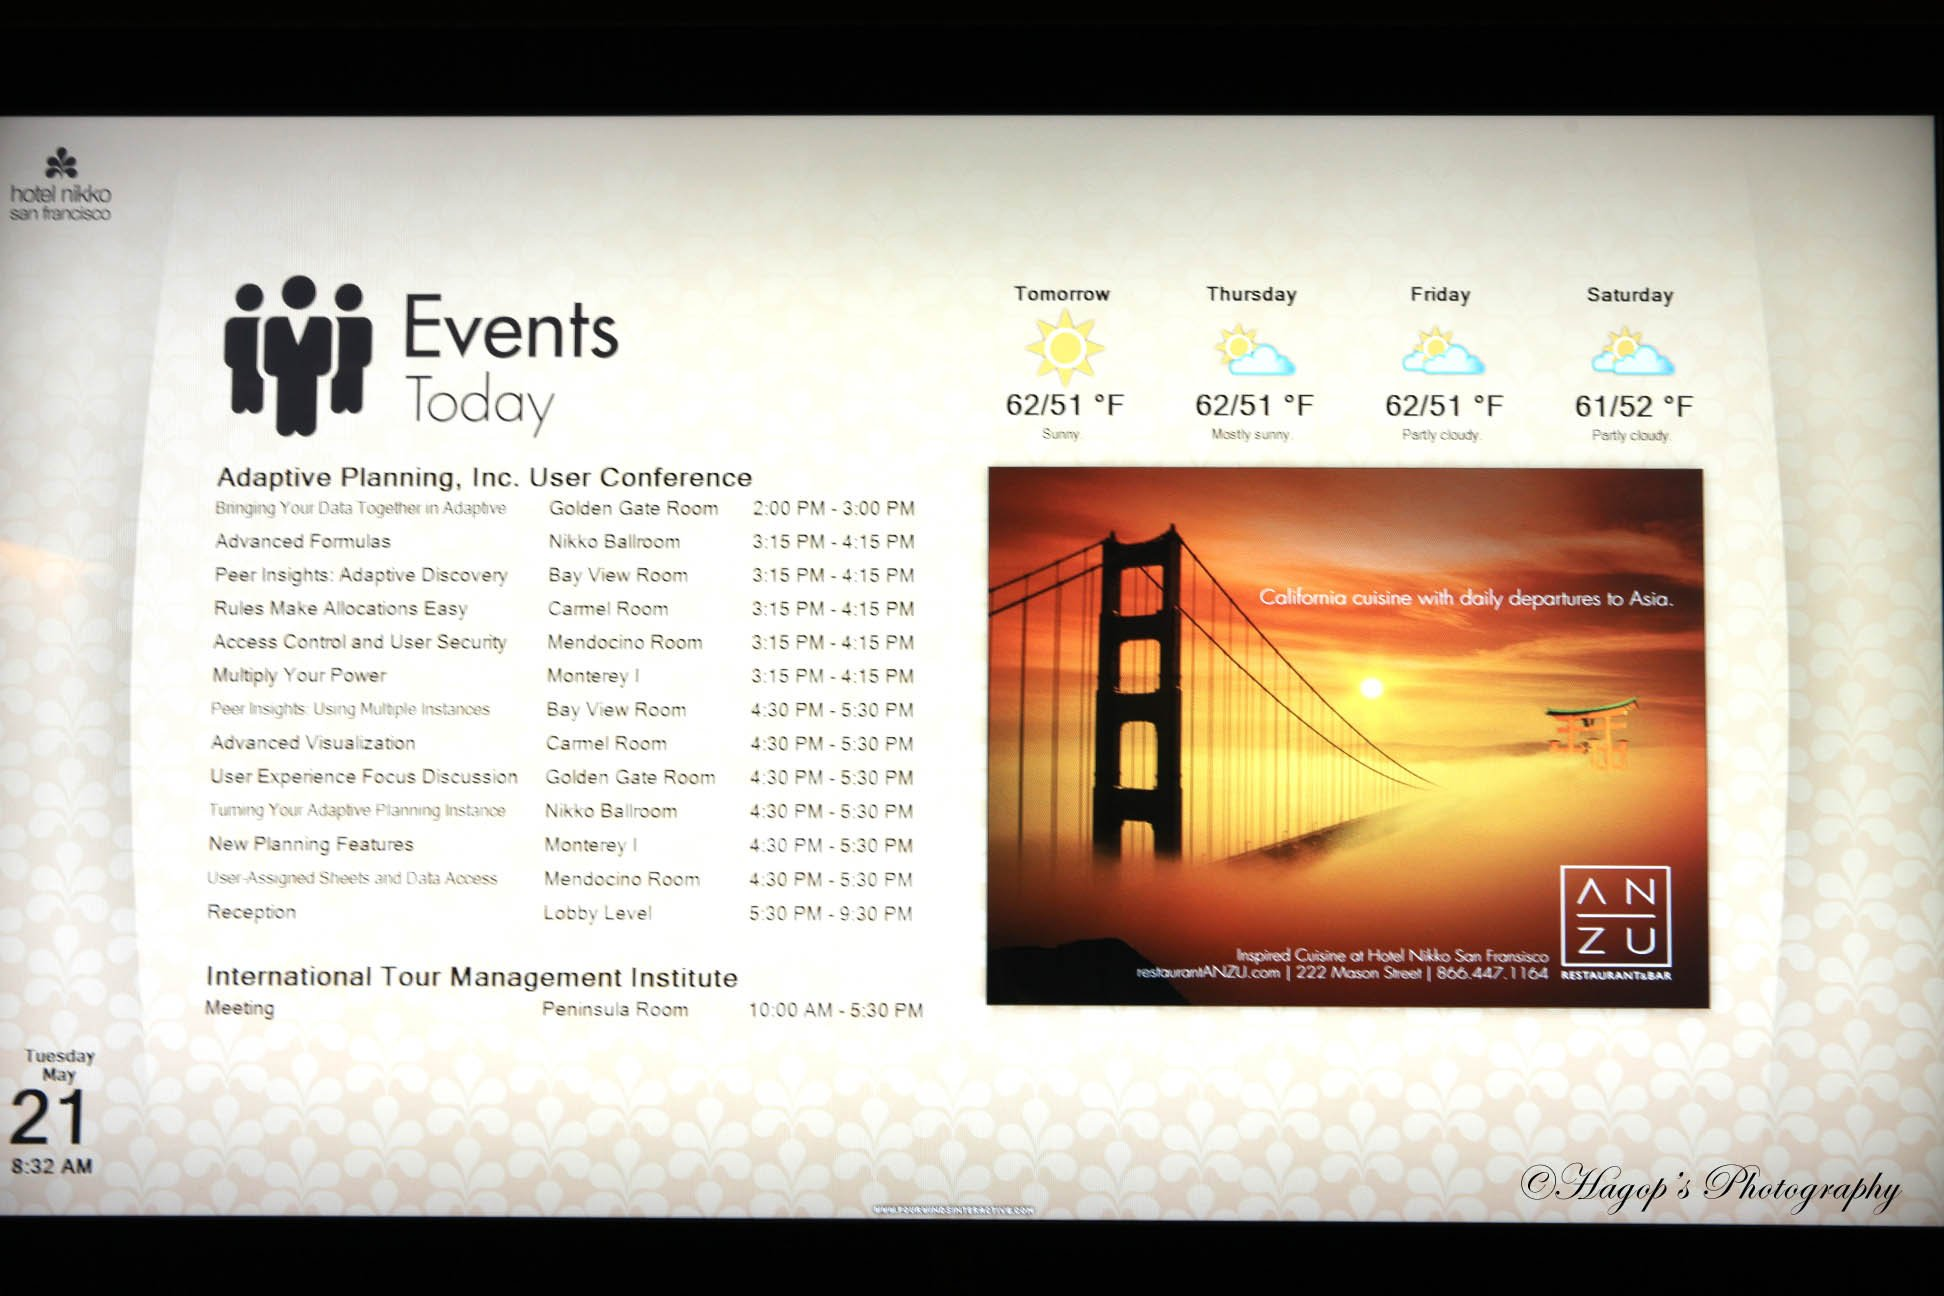 monitor displaying the events of the conference